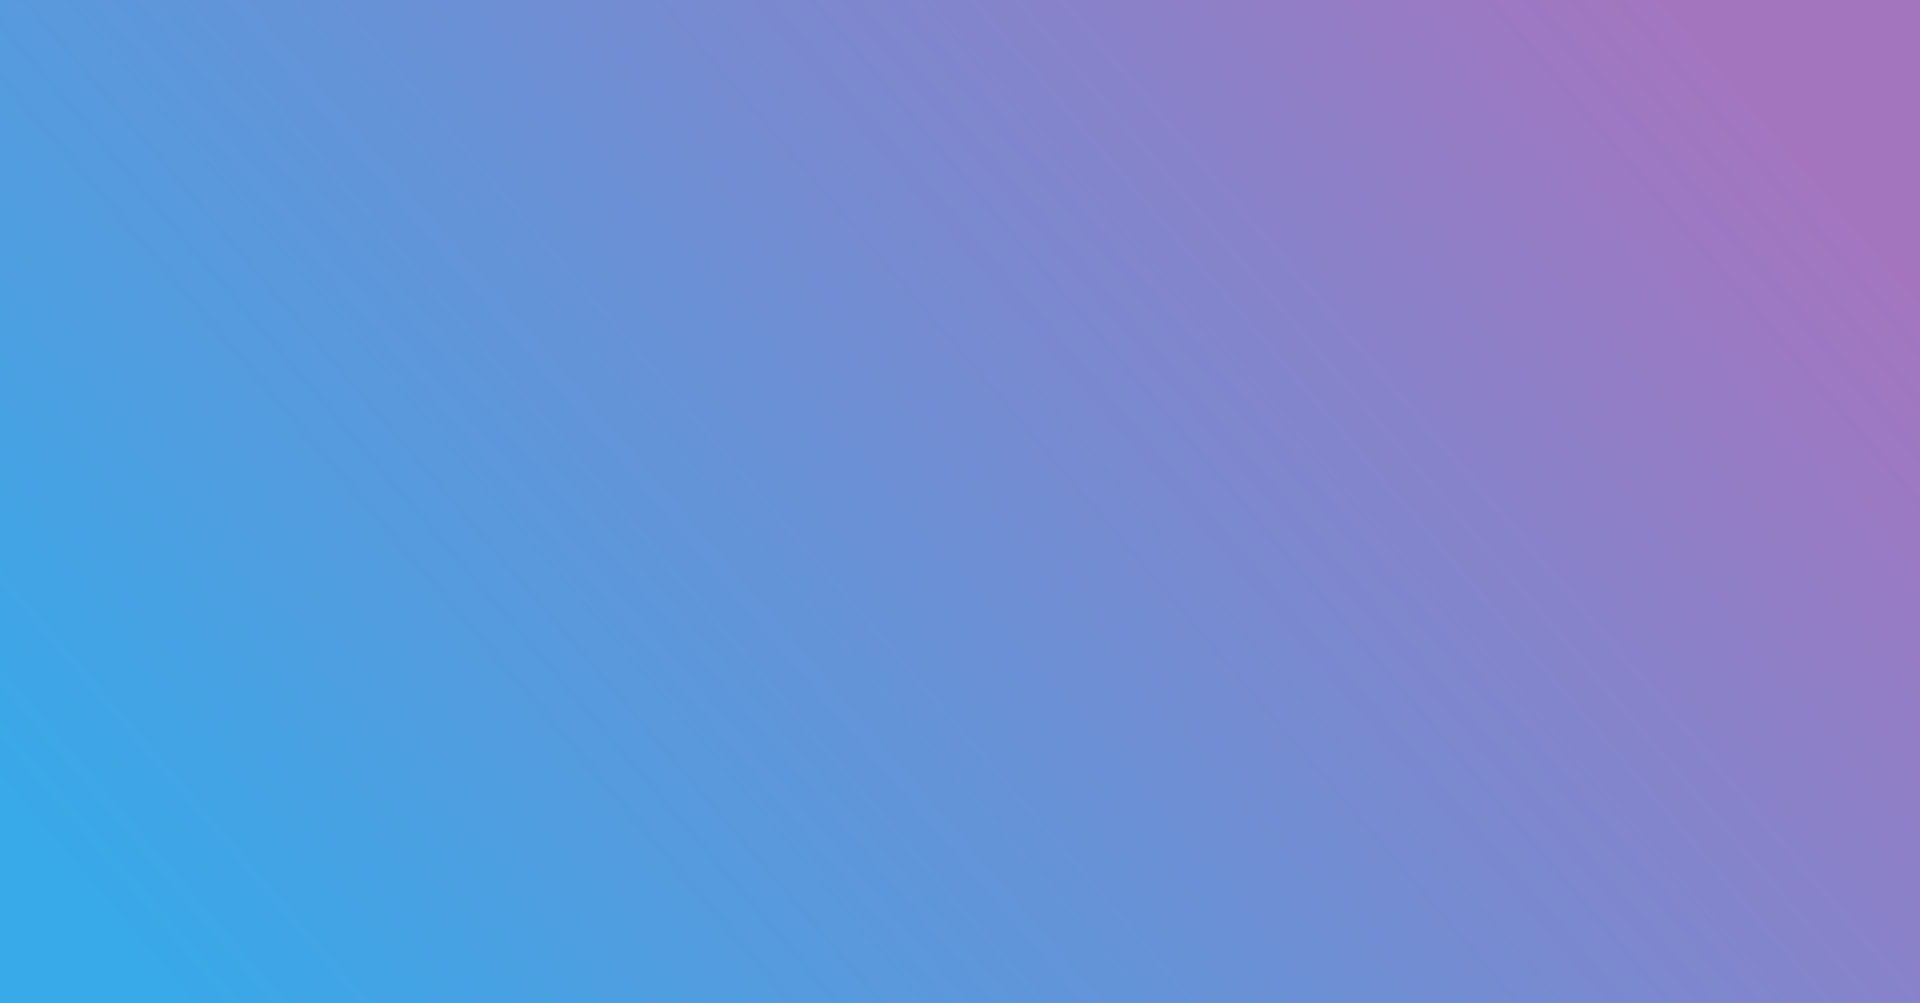 Animated Gradient Background in CSS